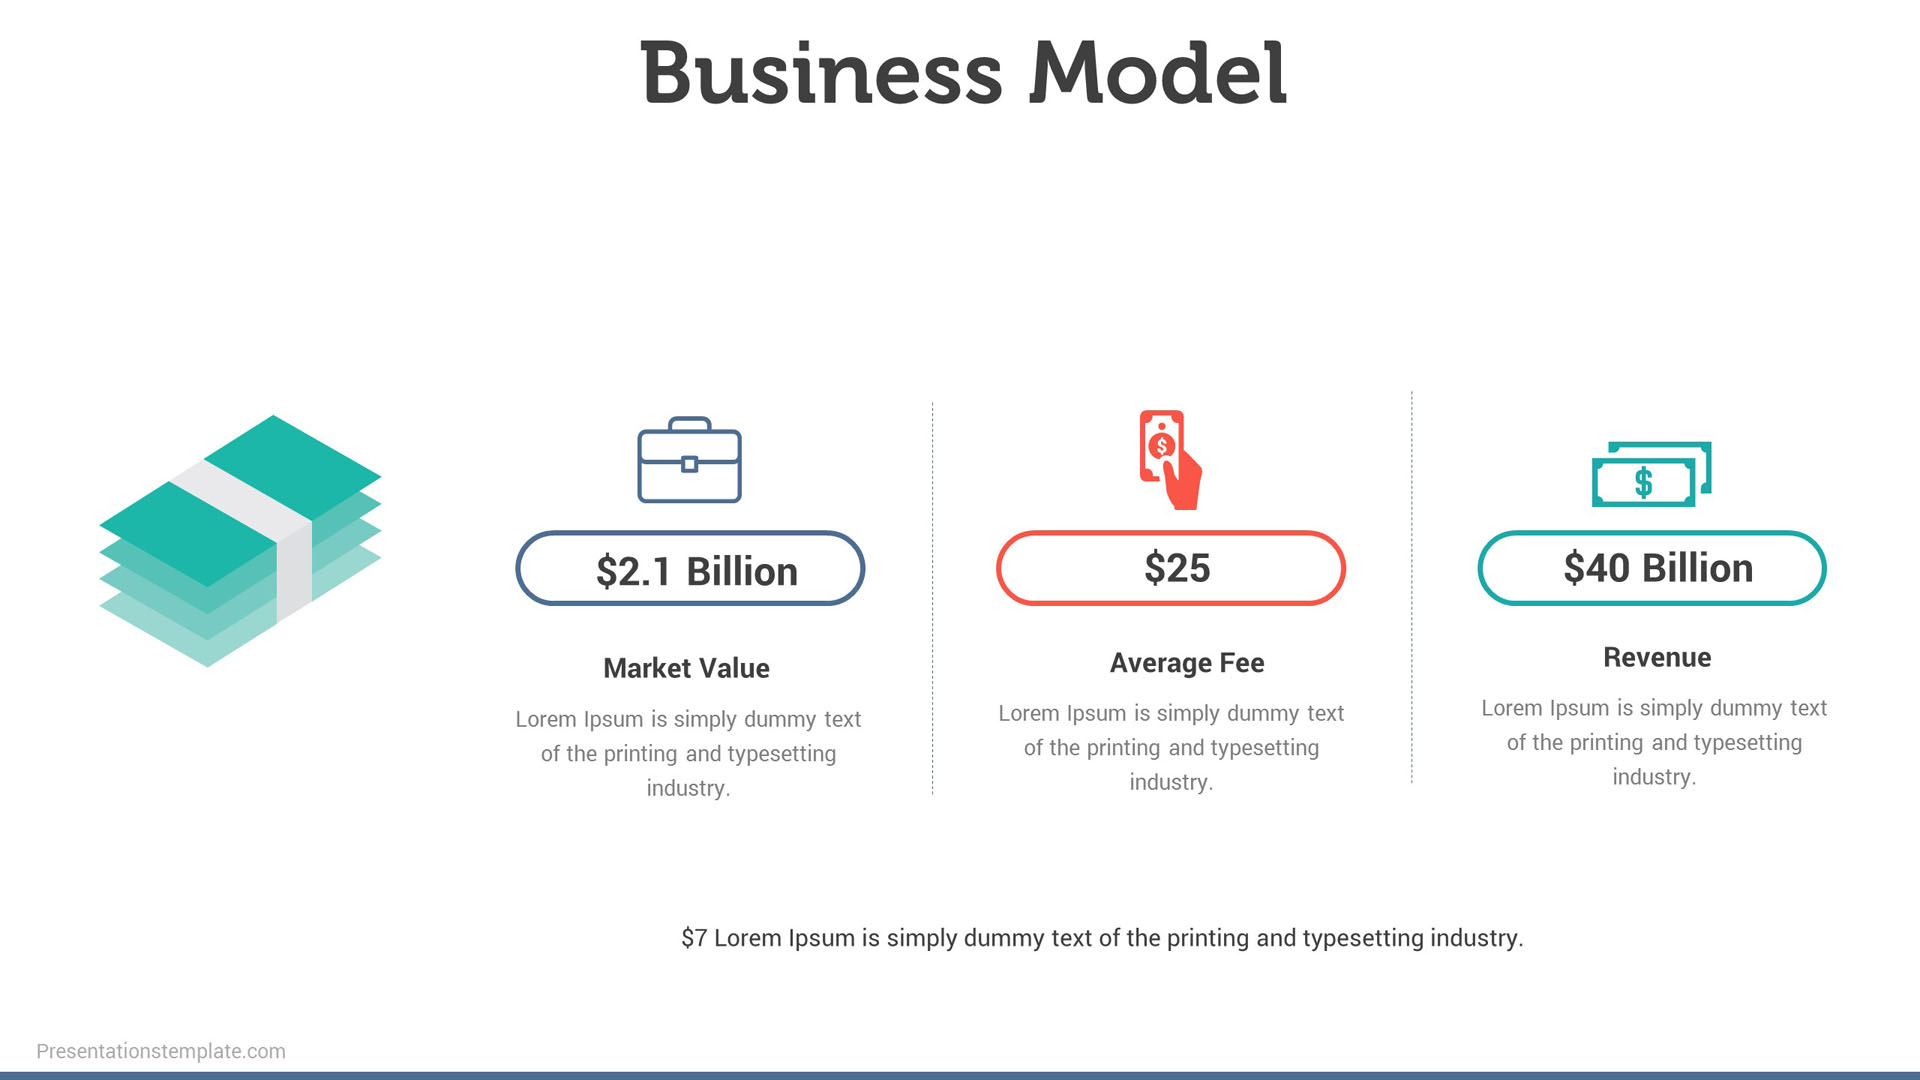 Presentations Template Business Model Slide Examples